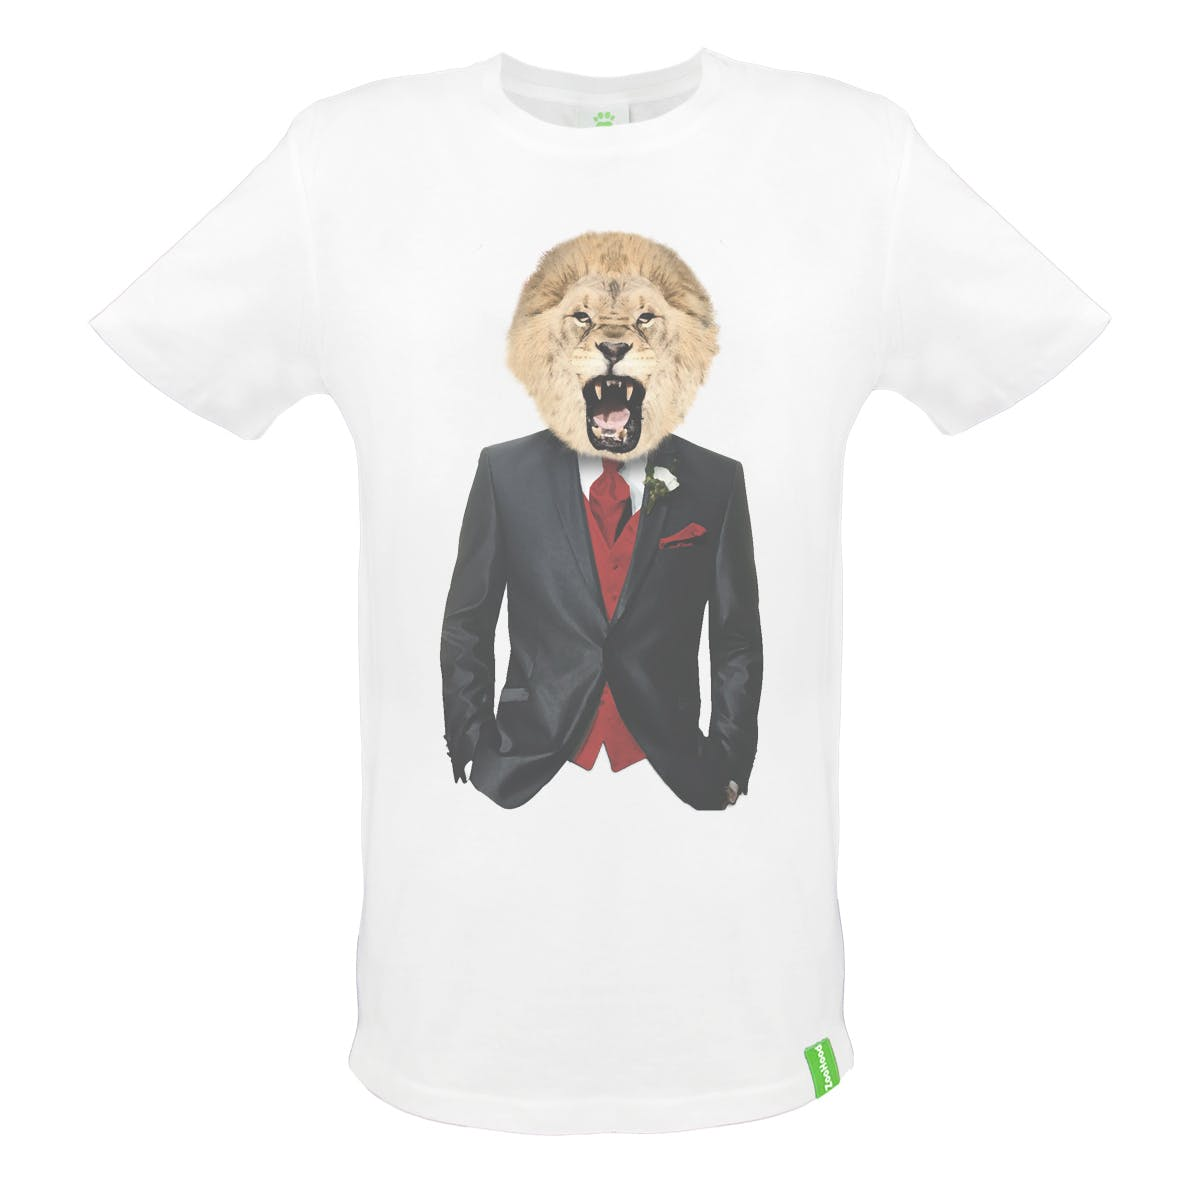 well_dressed_lion_t_shirt_1d__40902.1412178525.1280.1280